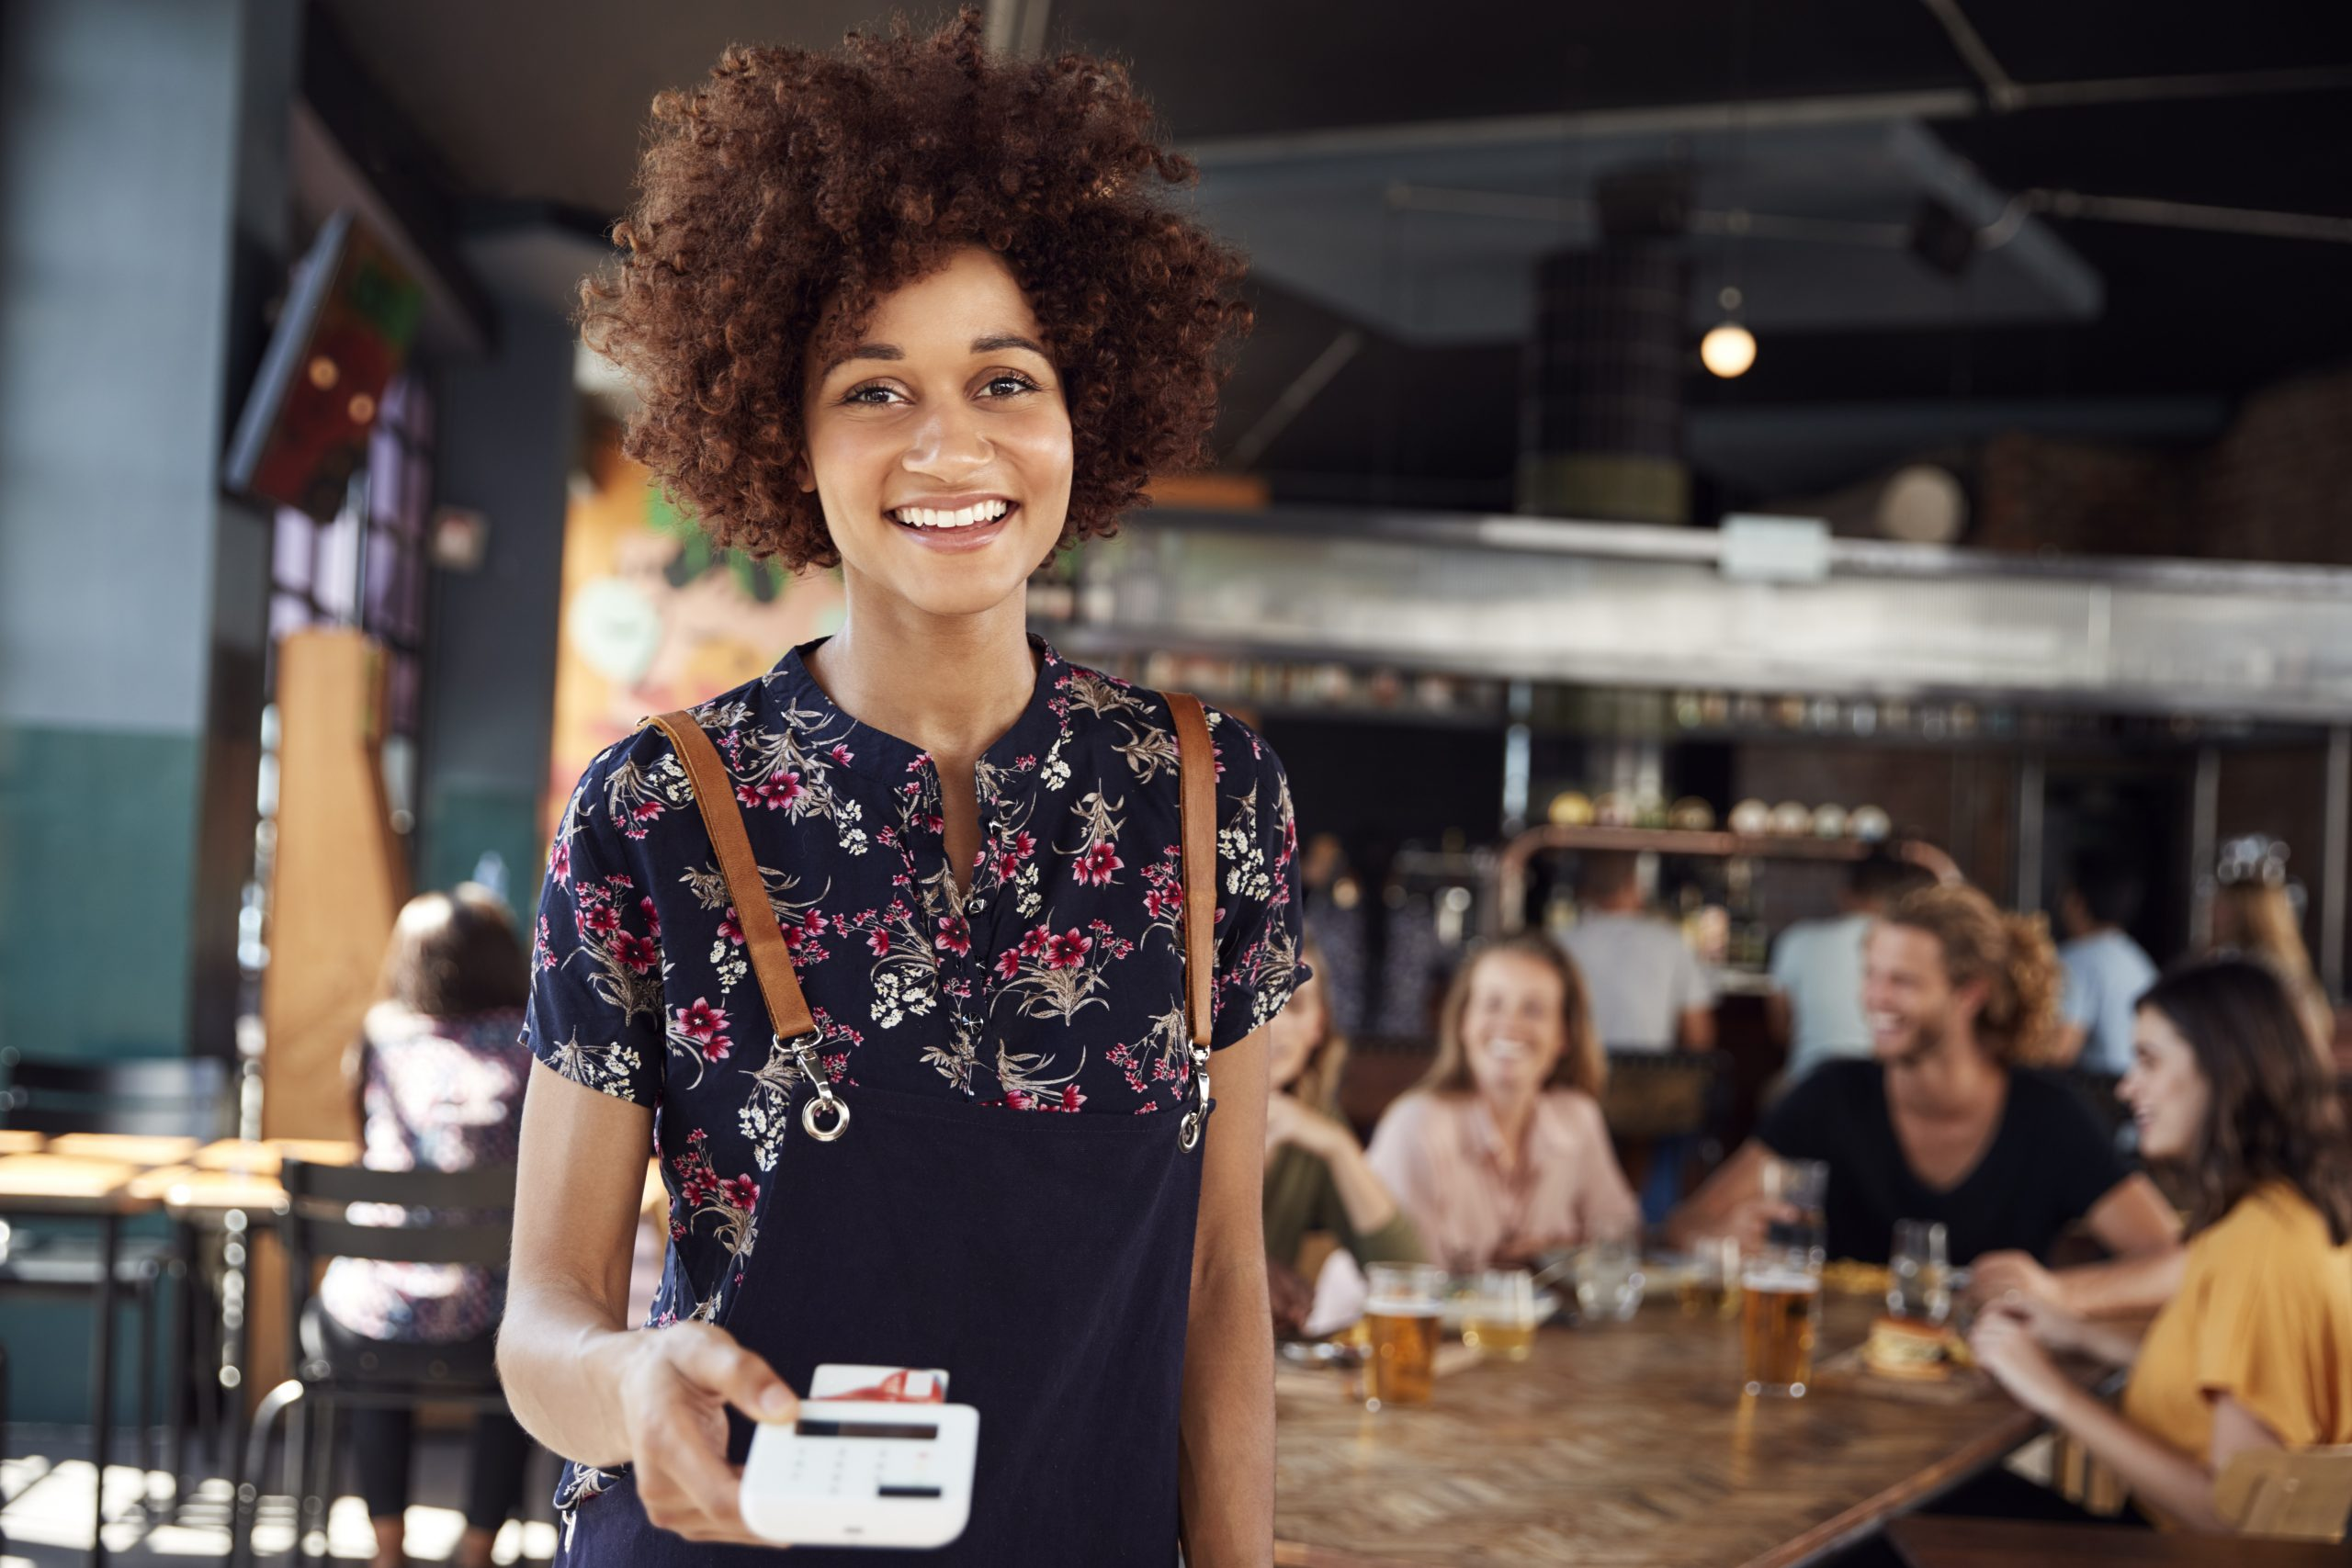 Waitress Holding Credit Card Payment Terminal In Busy Bar Restaurant